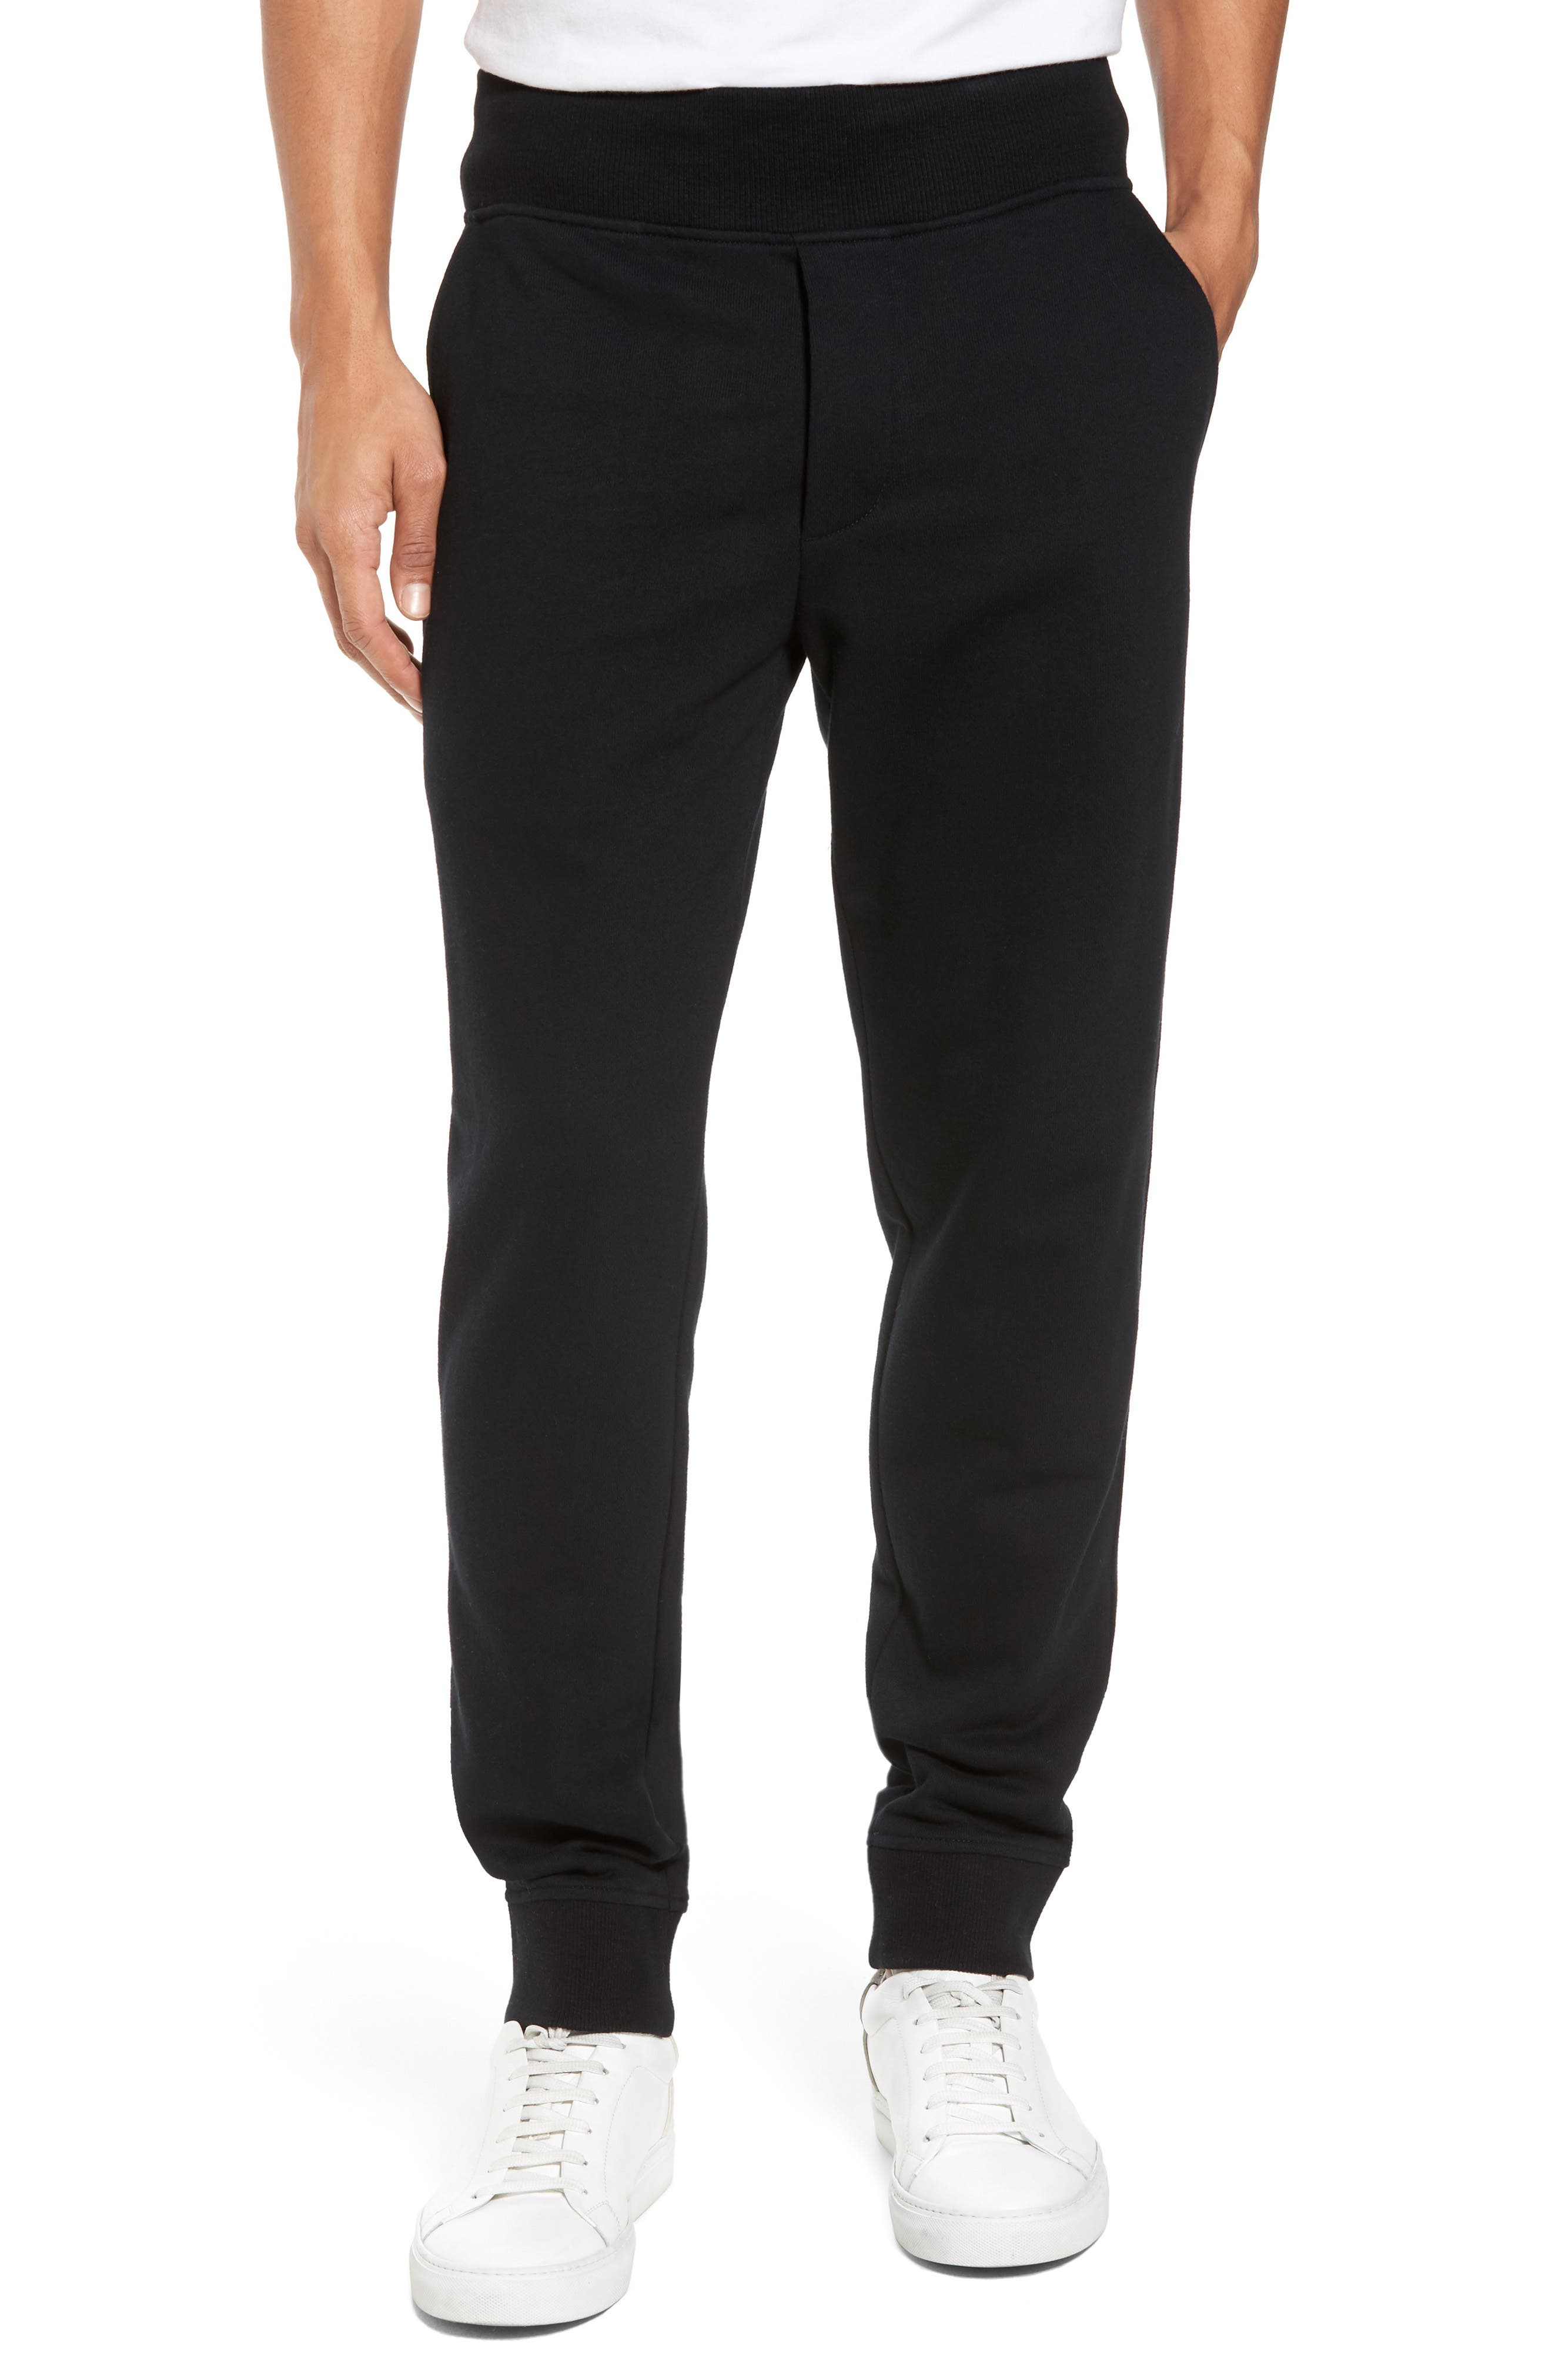 French Terry Regular Fit Sweatpants,                             Main thumbnail 1, color,                             001